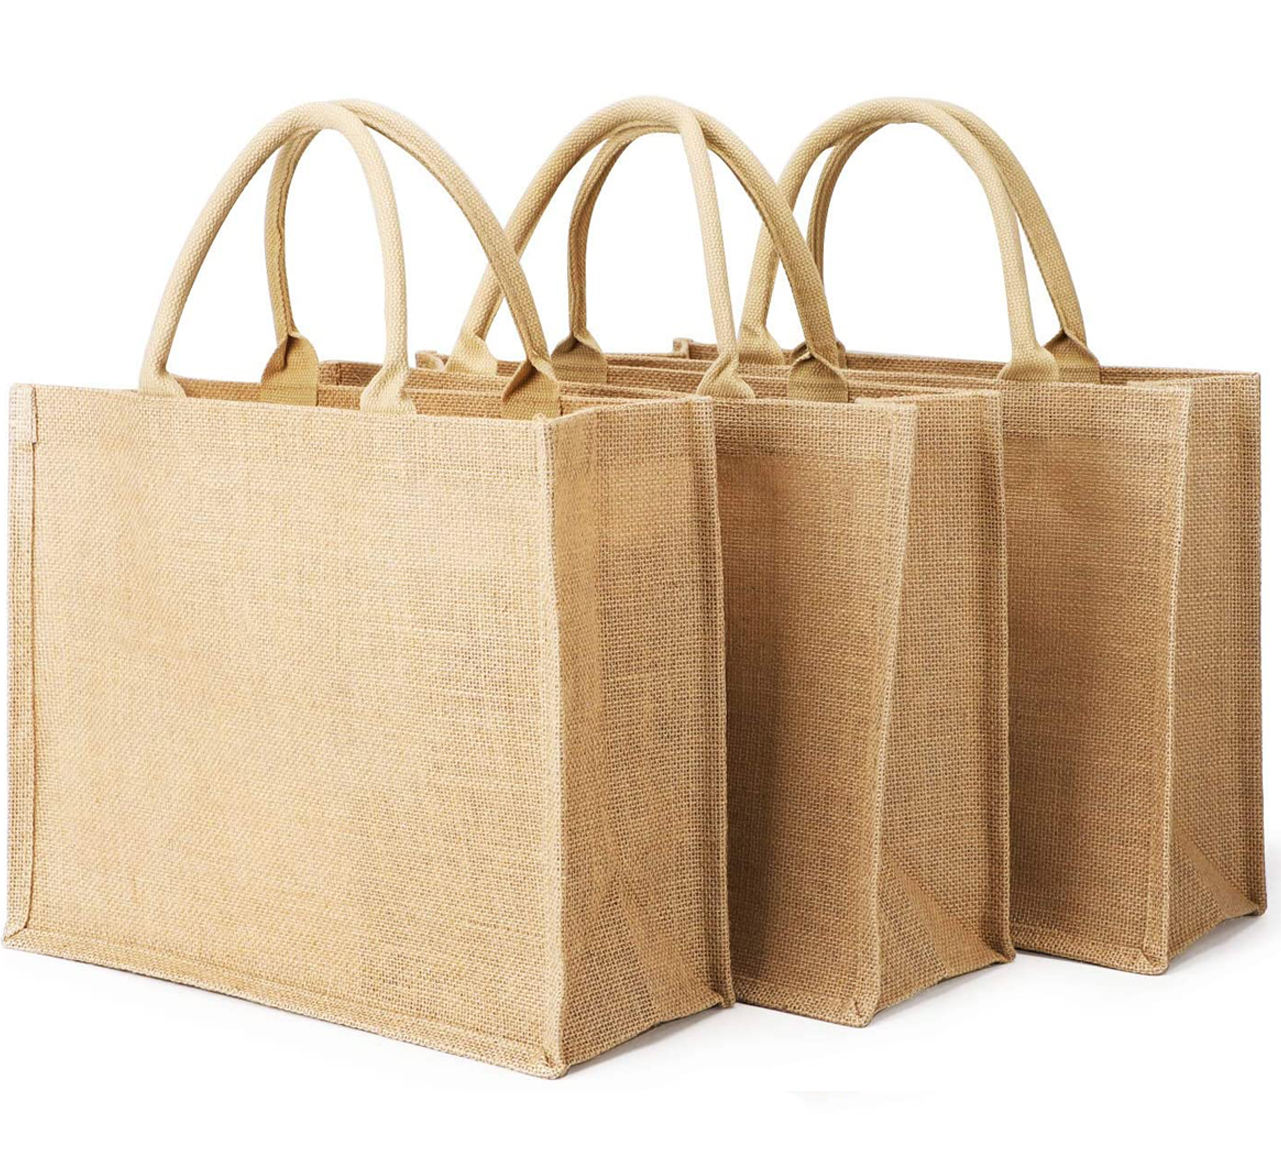 Custom Logo Eco-Friendly Reusable Burlap Grocery Bag Women Shopping Gifts Tote Bag Jute